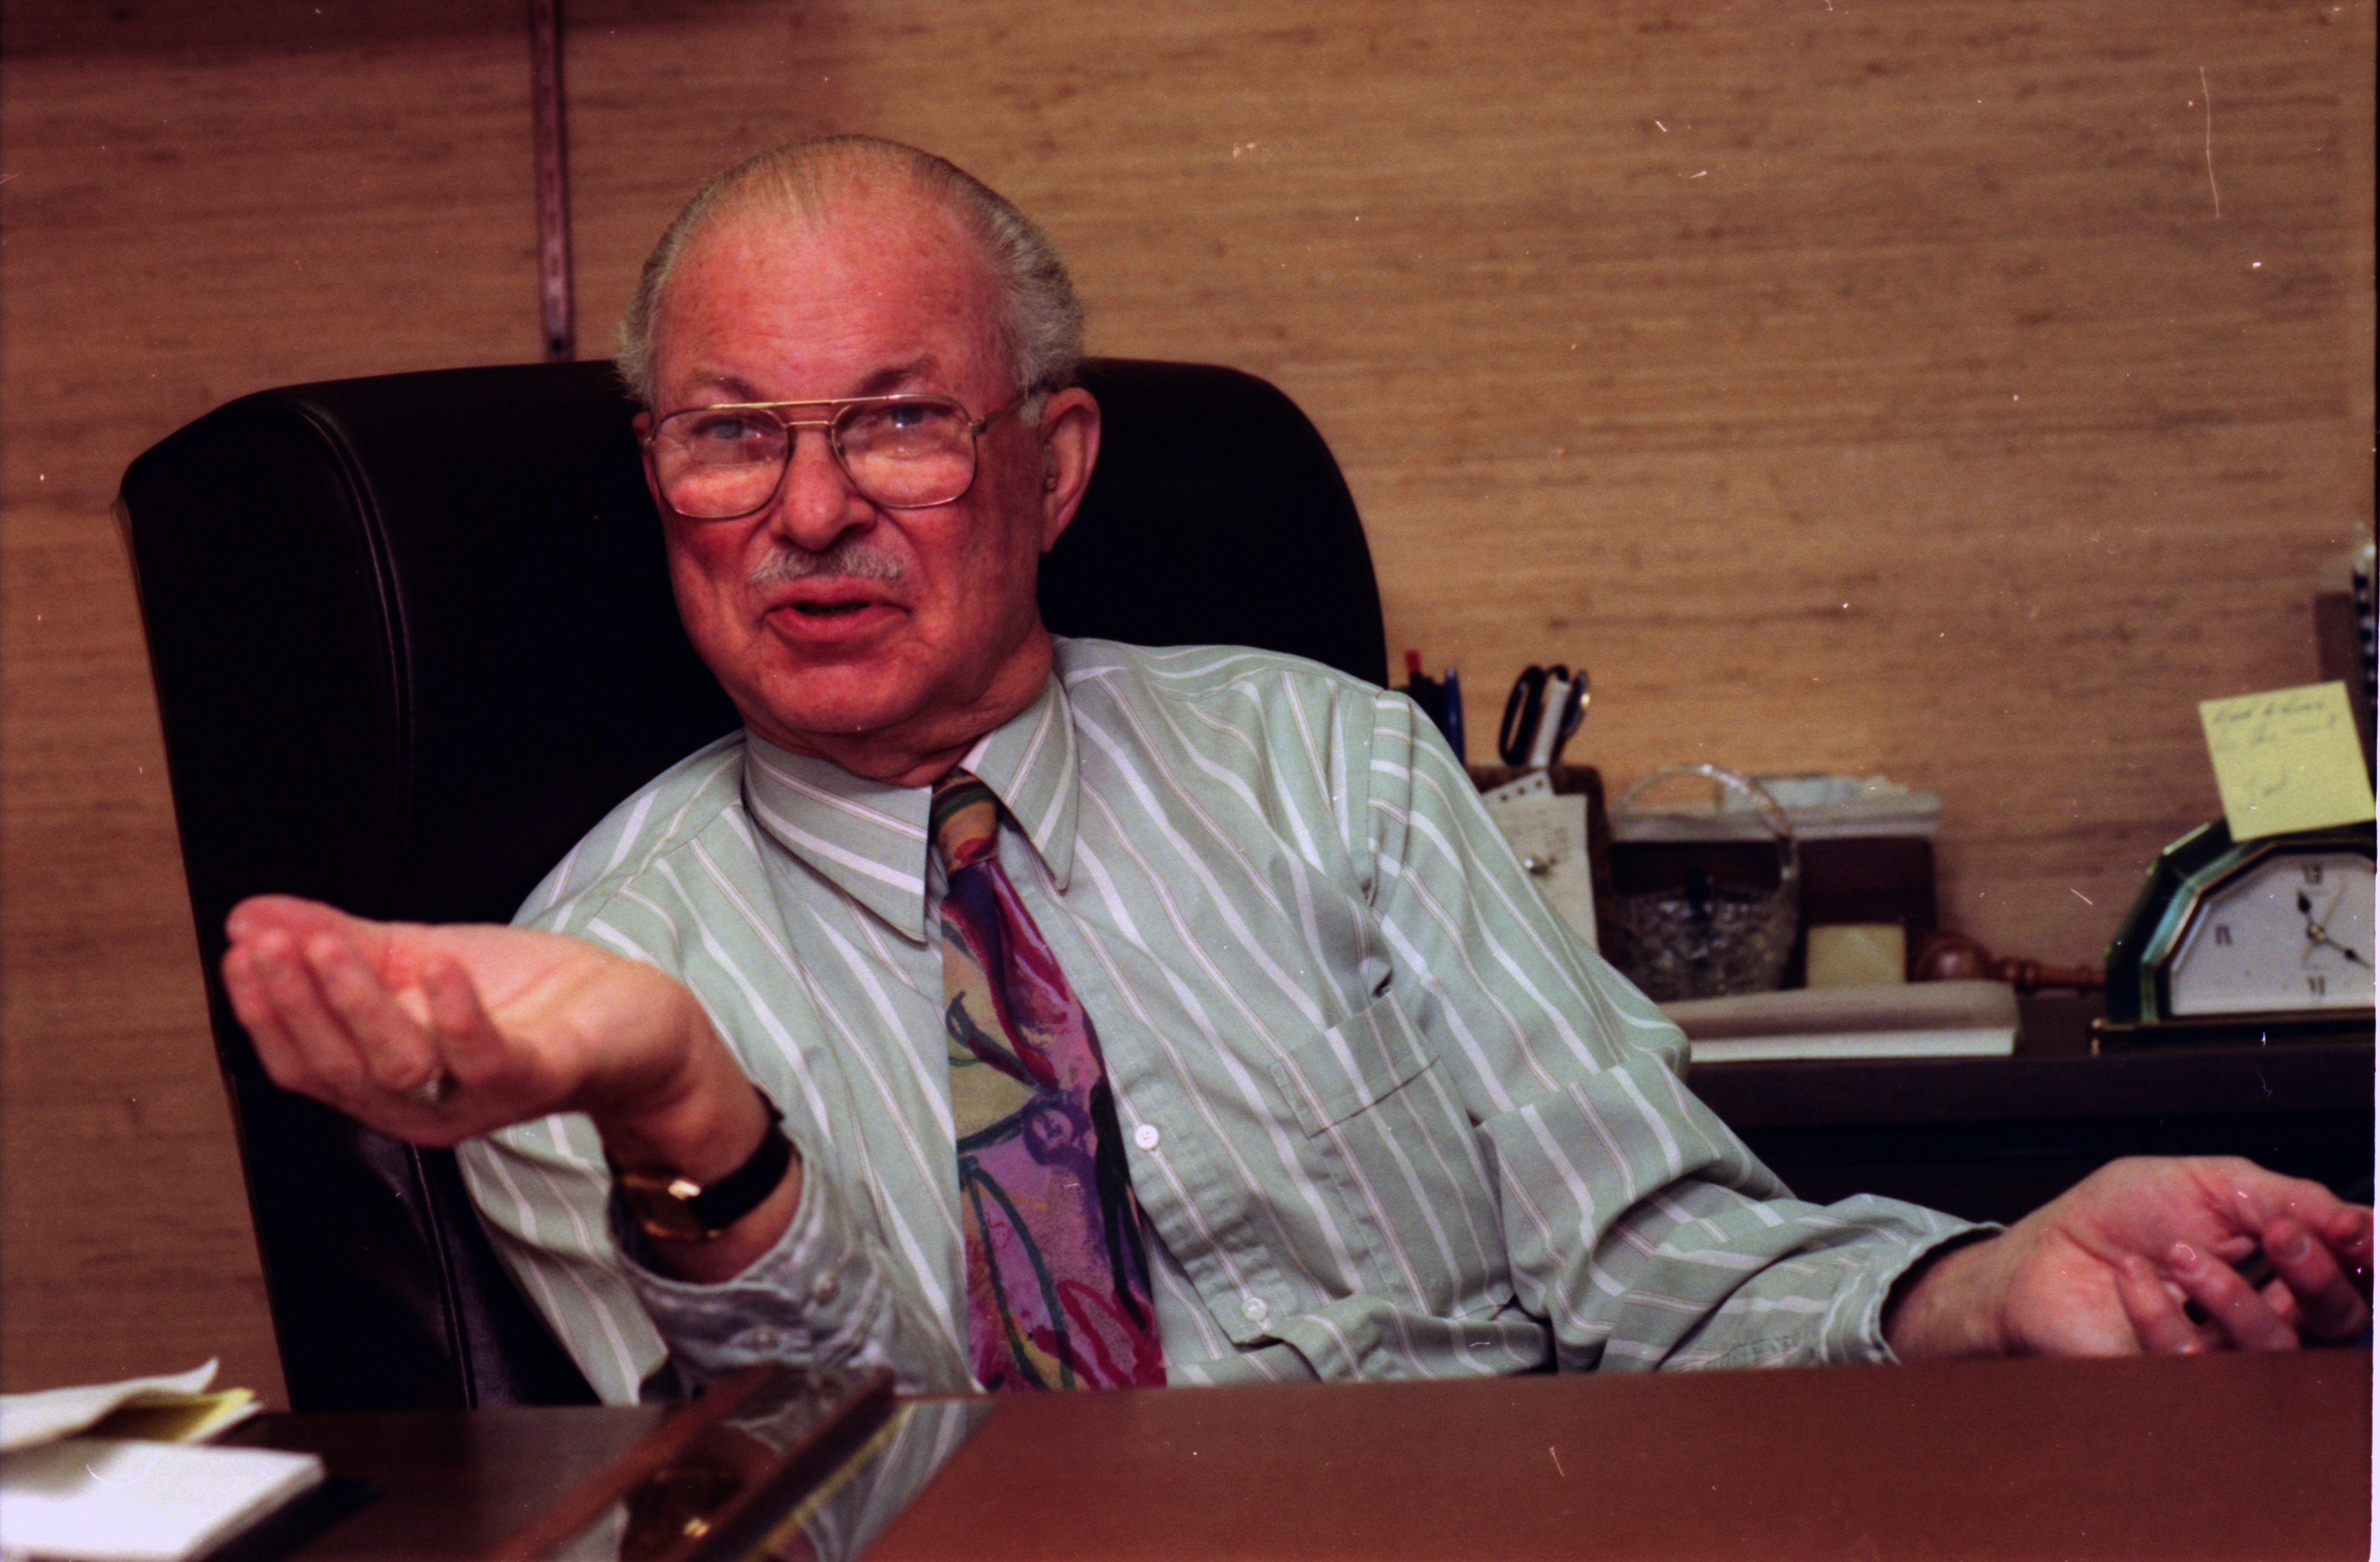 Judge S. J. Elden at His Desk, December 1992 image